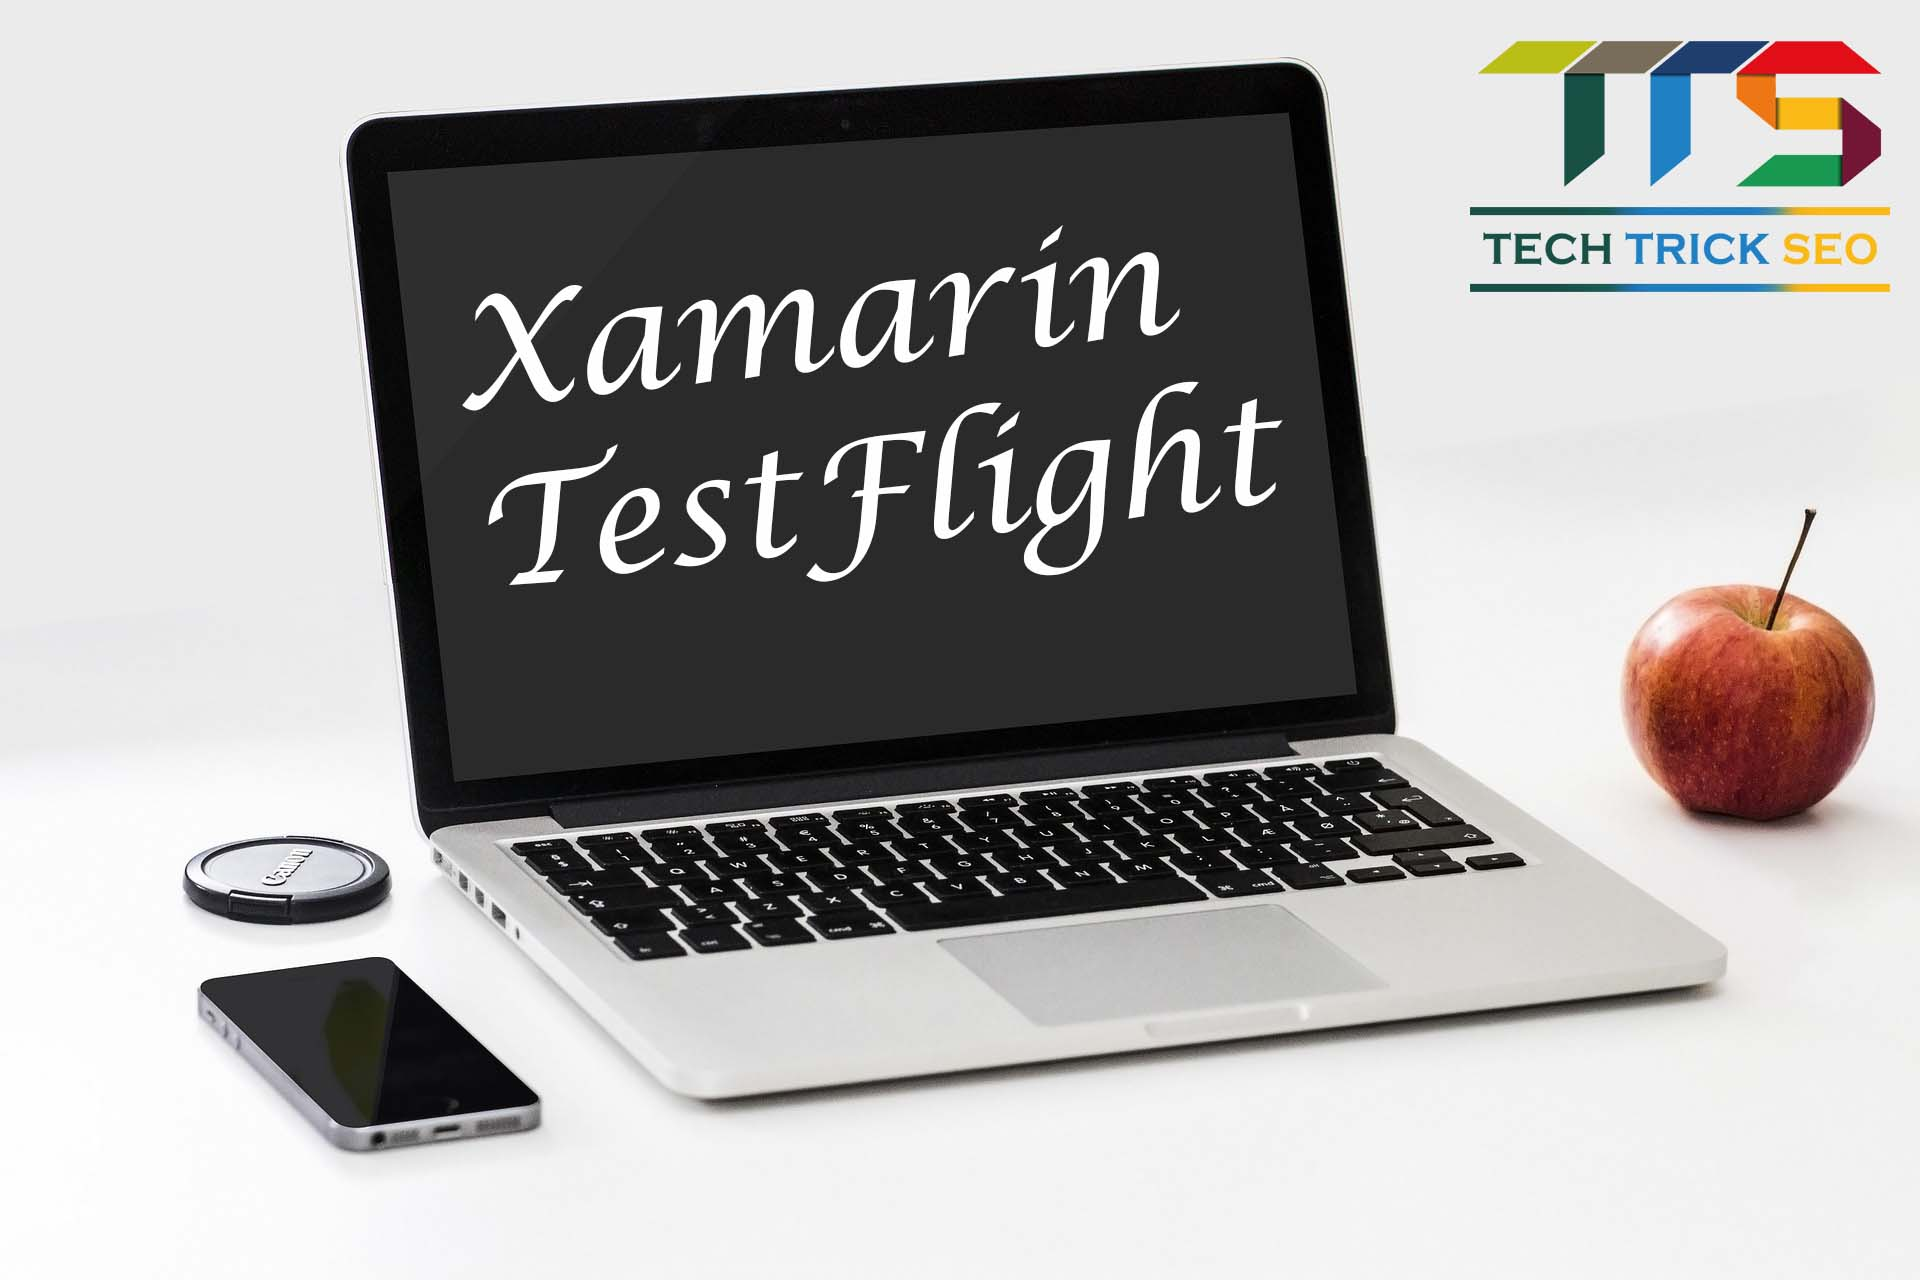 xamarin testflight emulator download